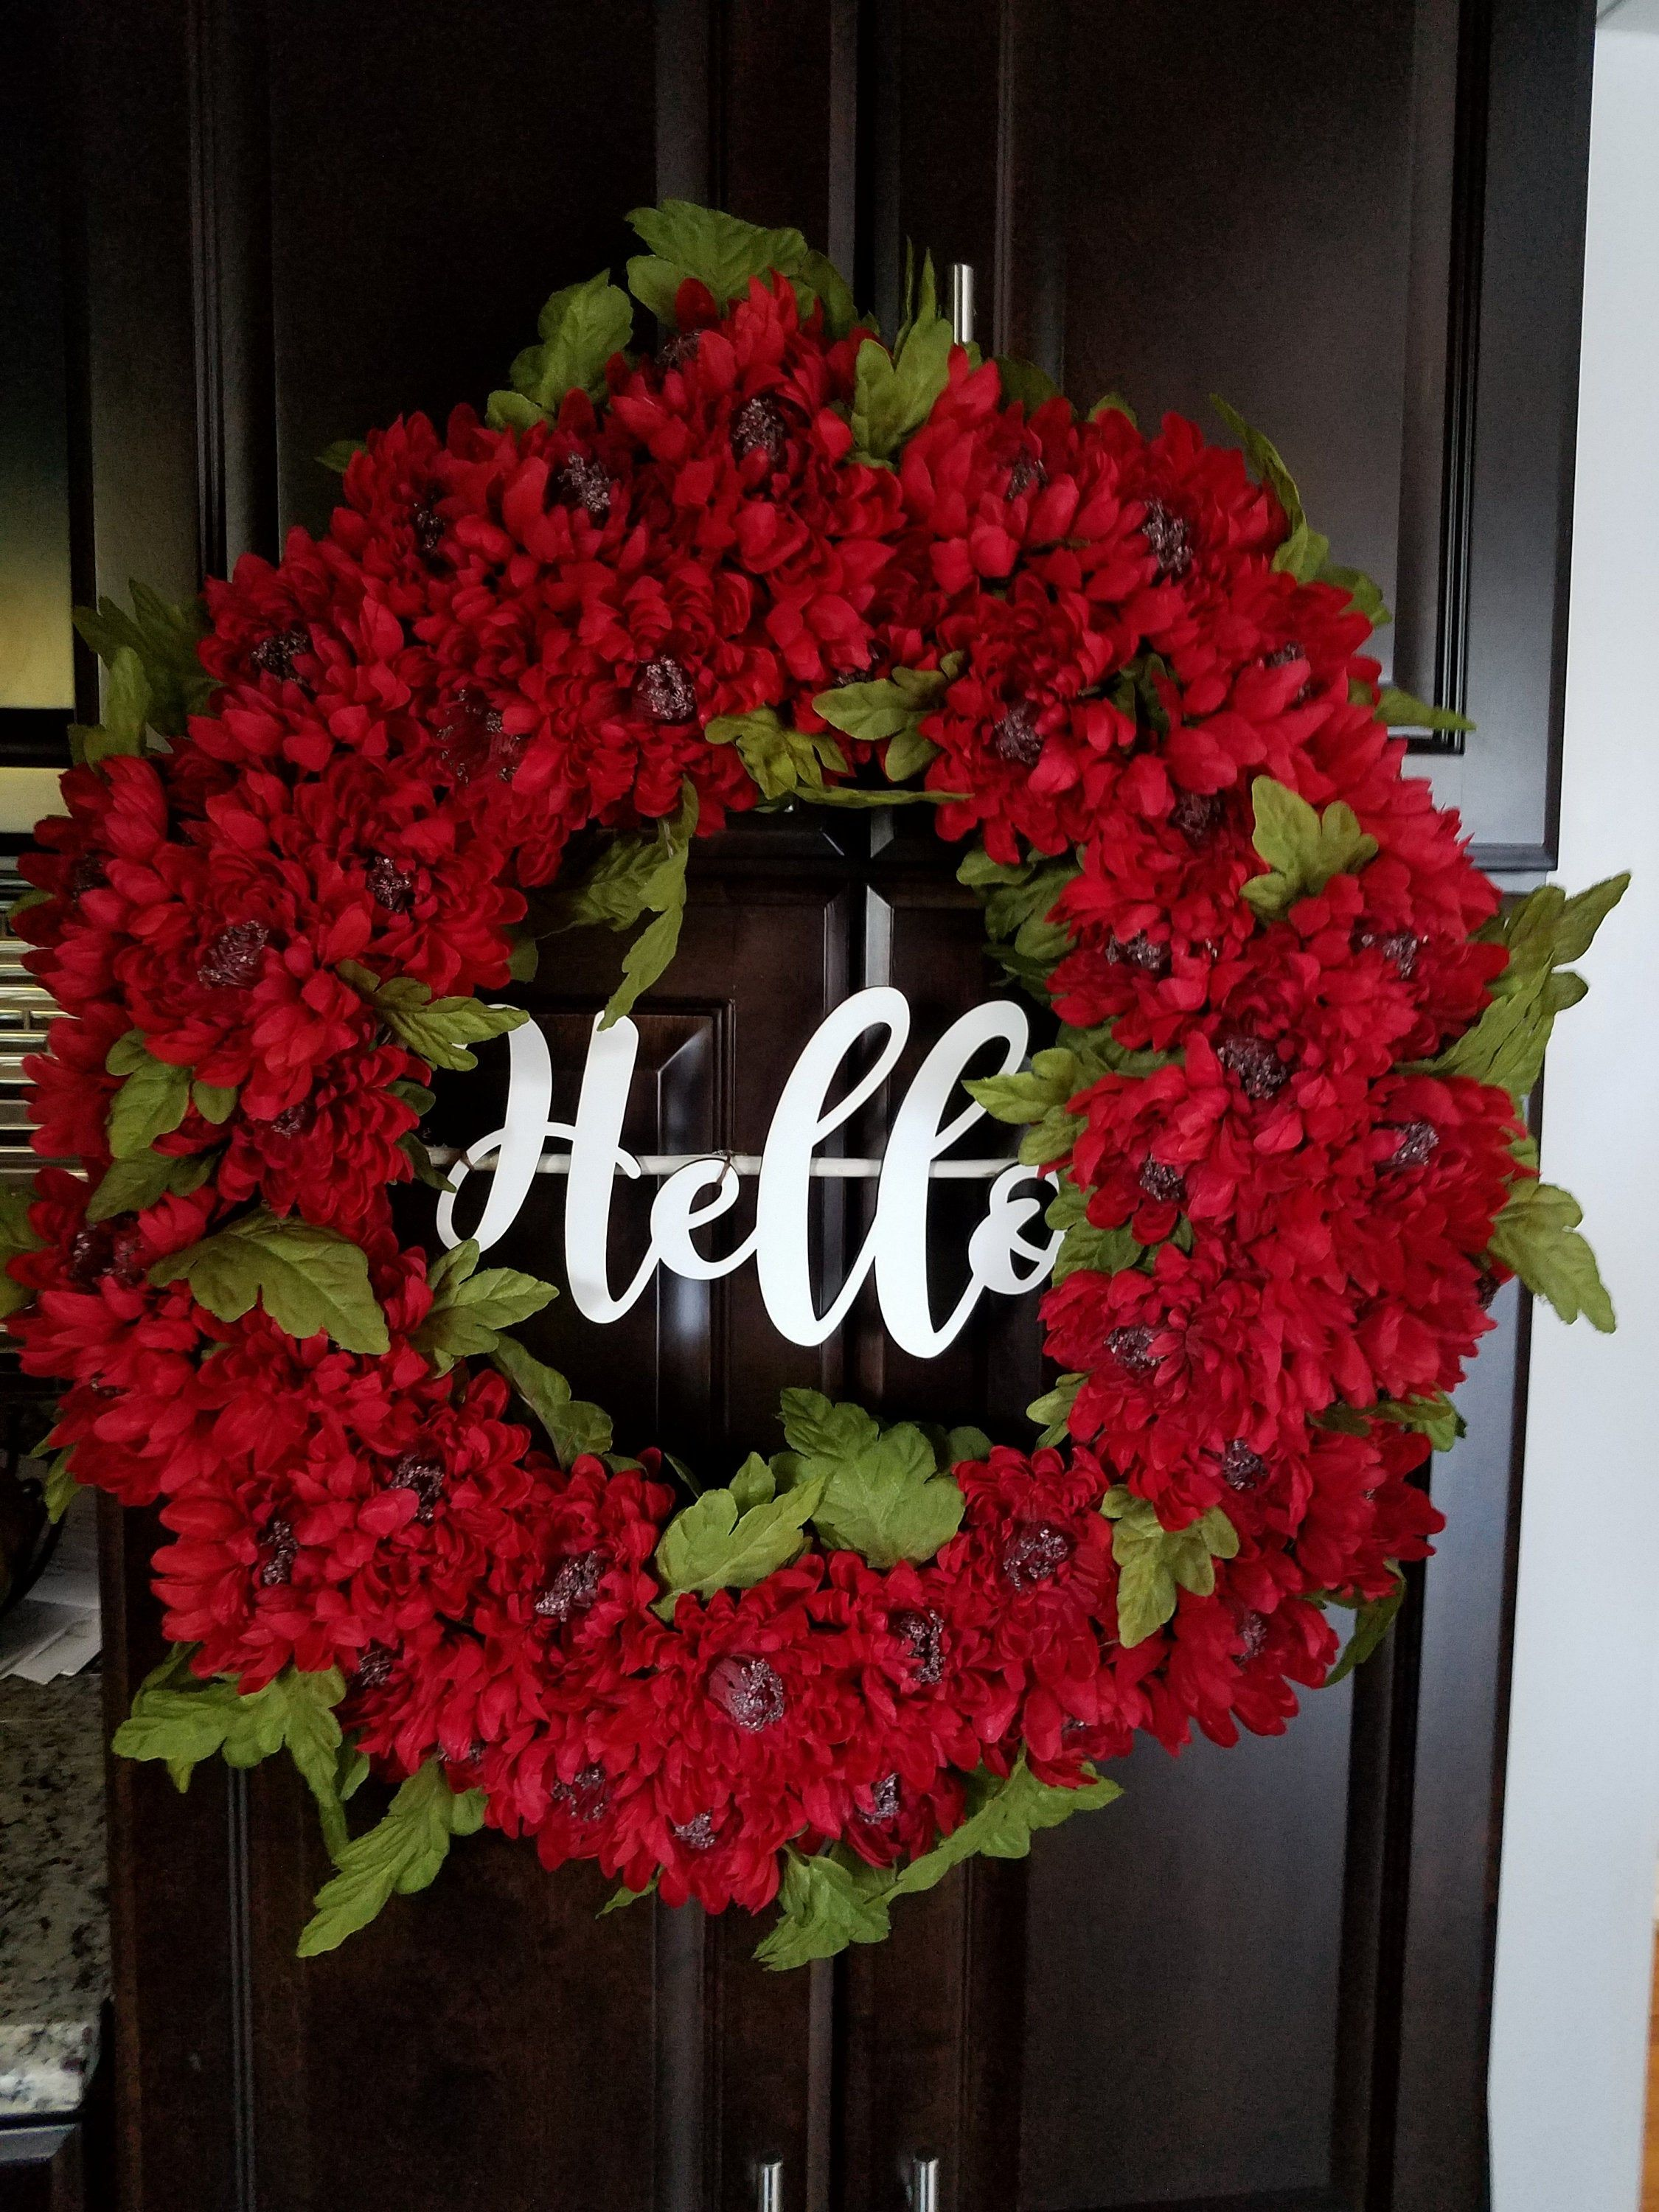 Red Wreath For Front Door 22 In Wreath Year Round Wreath Winter Door Decor Hello Wreath Floral Wrea Door Wreaths Diy Winter Door Decorations Red Wreath